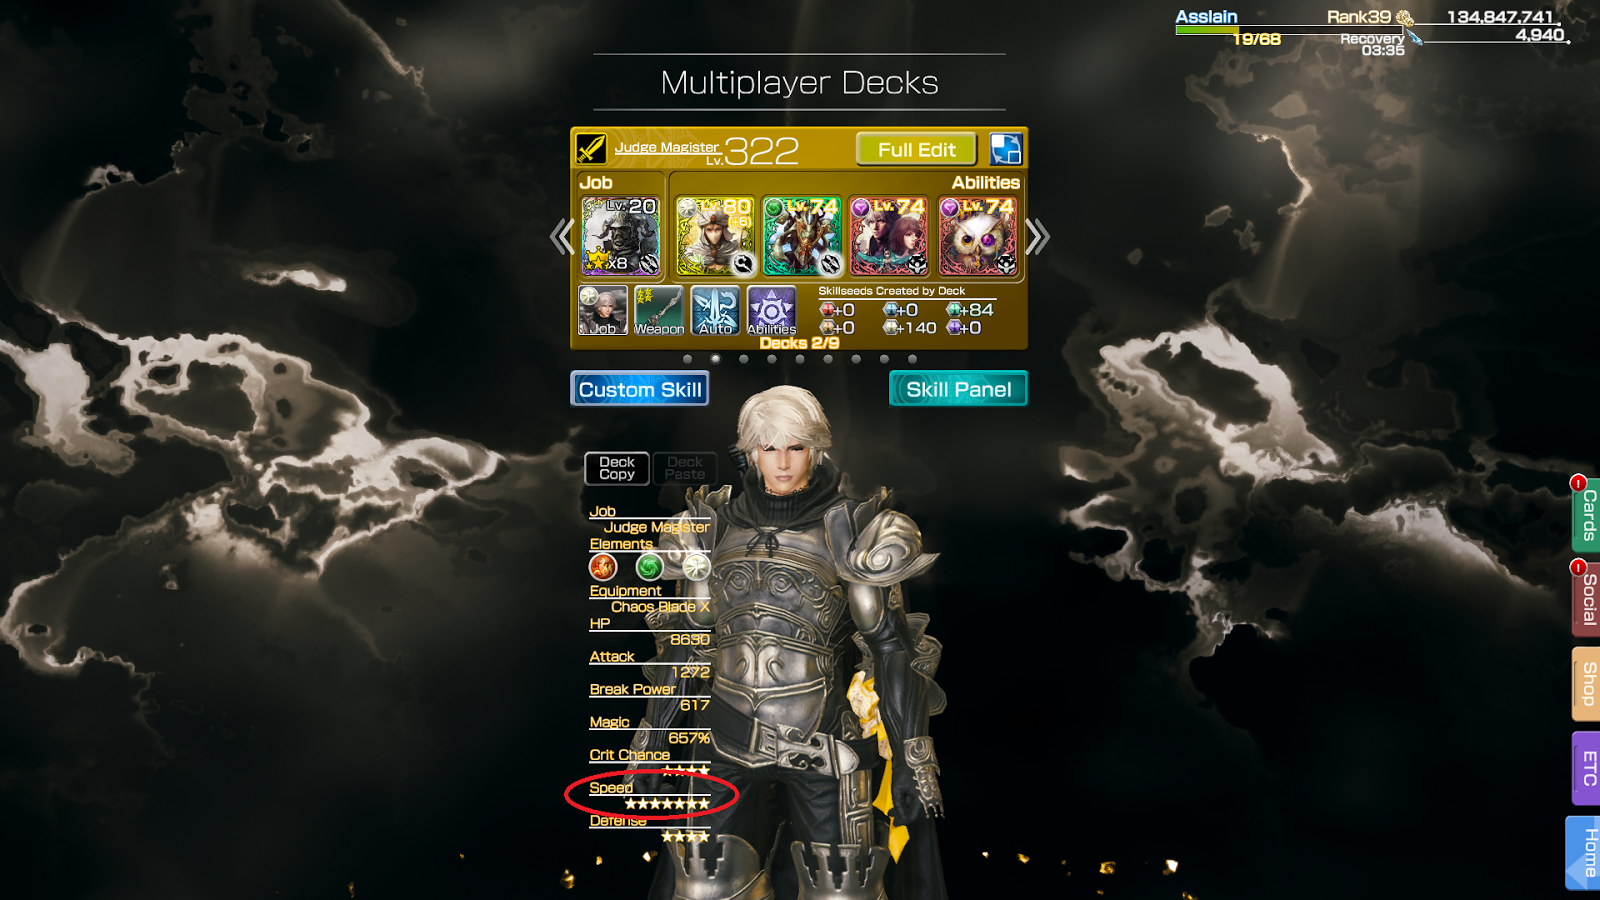 how to get more action move in multiplayer mobius final fantasy